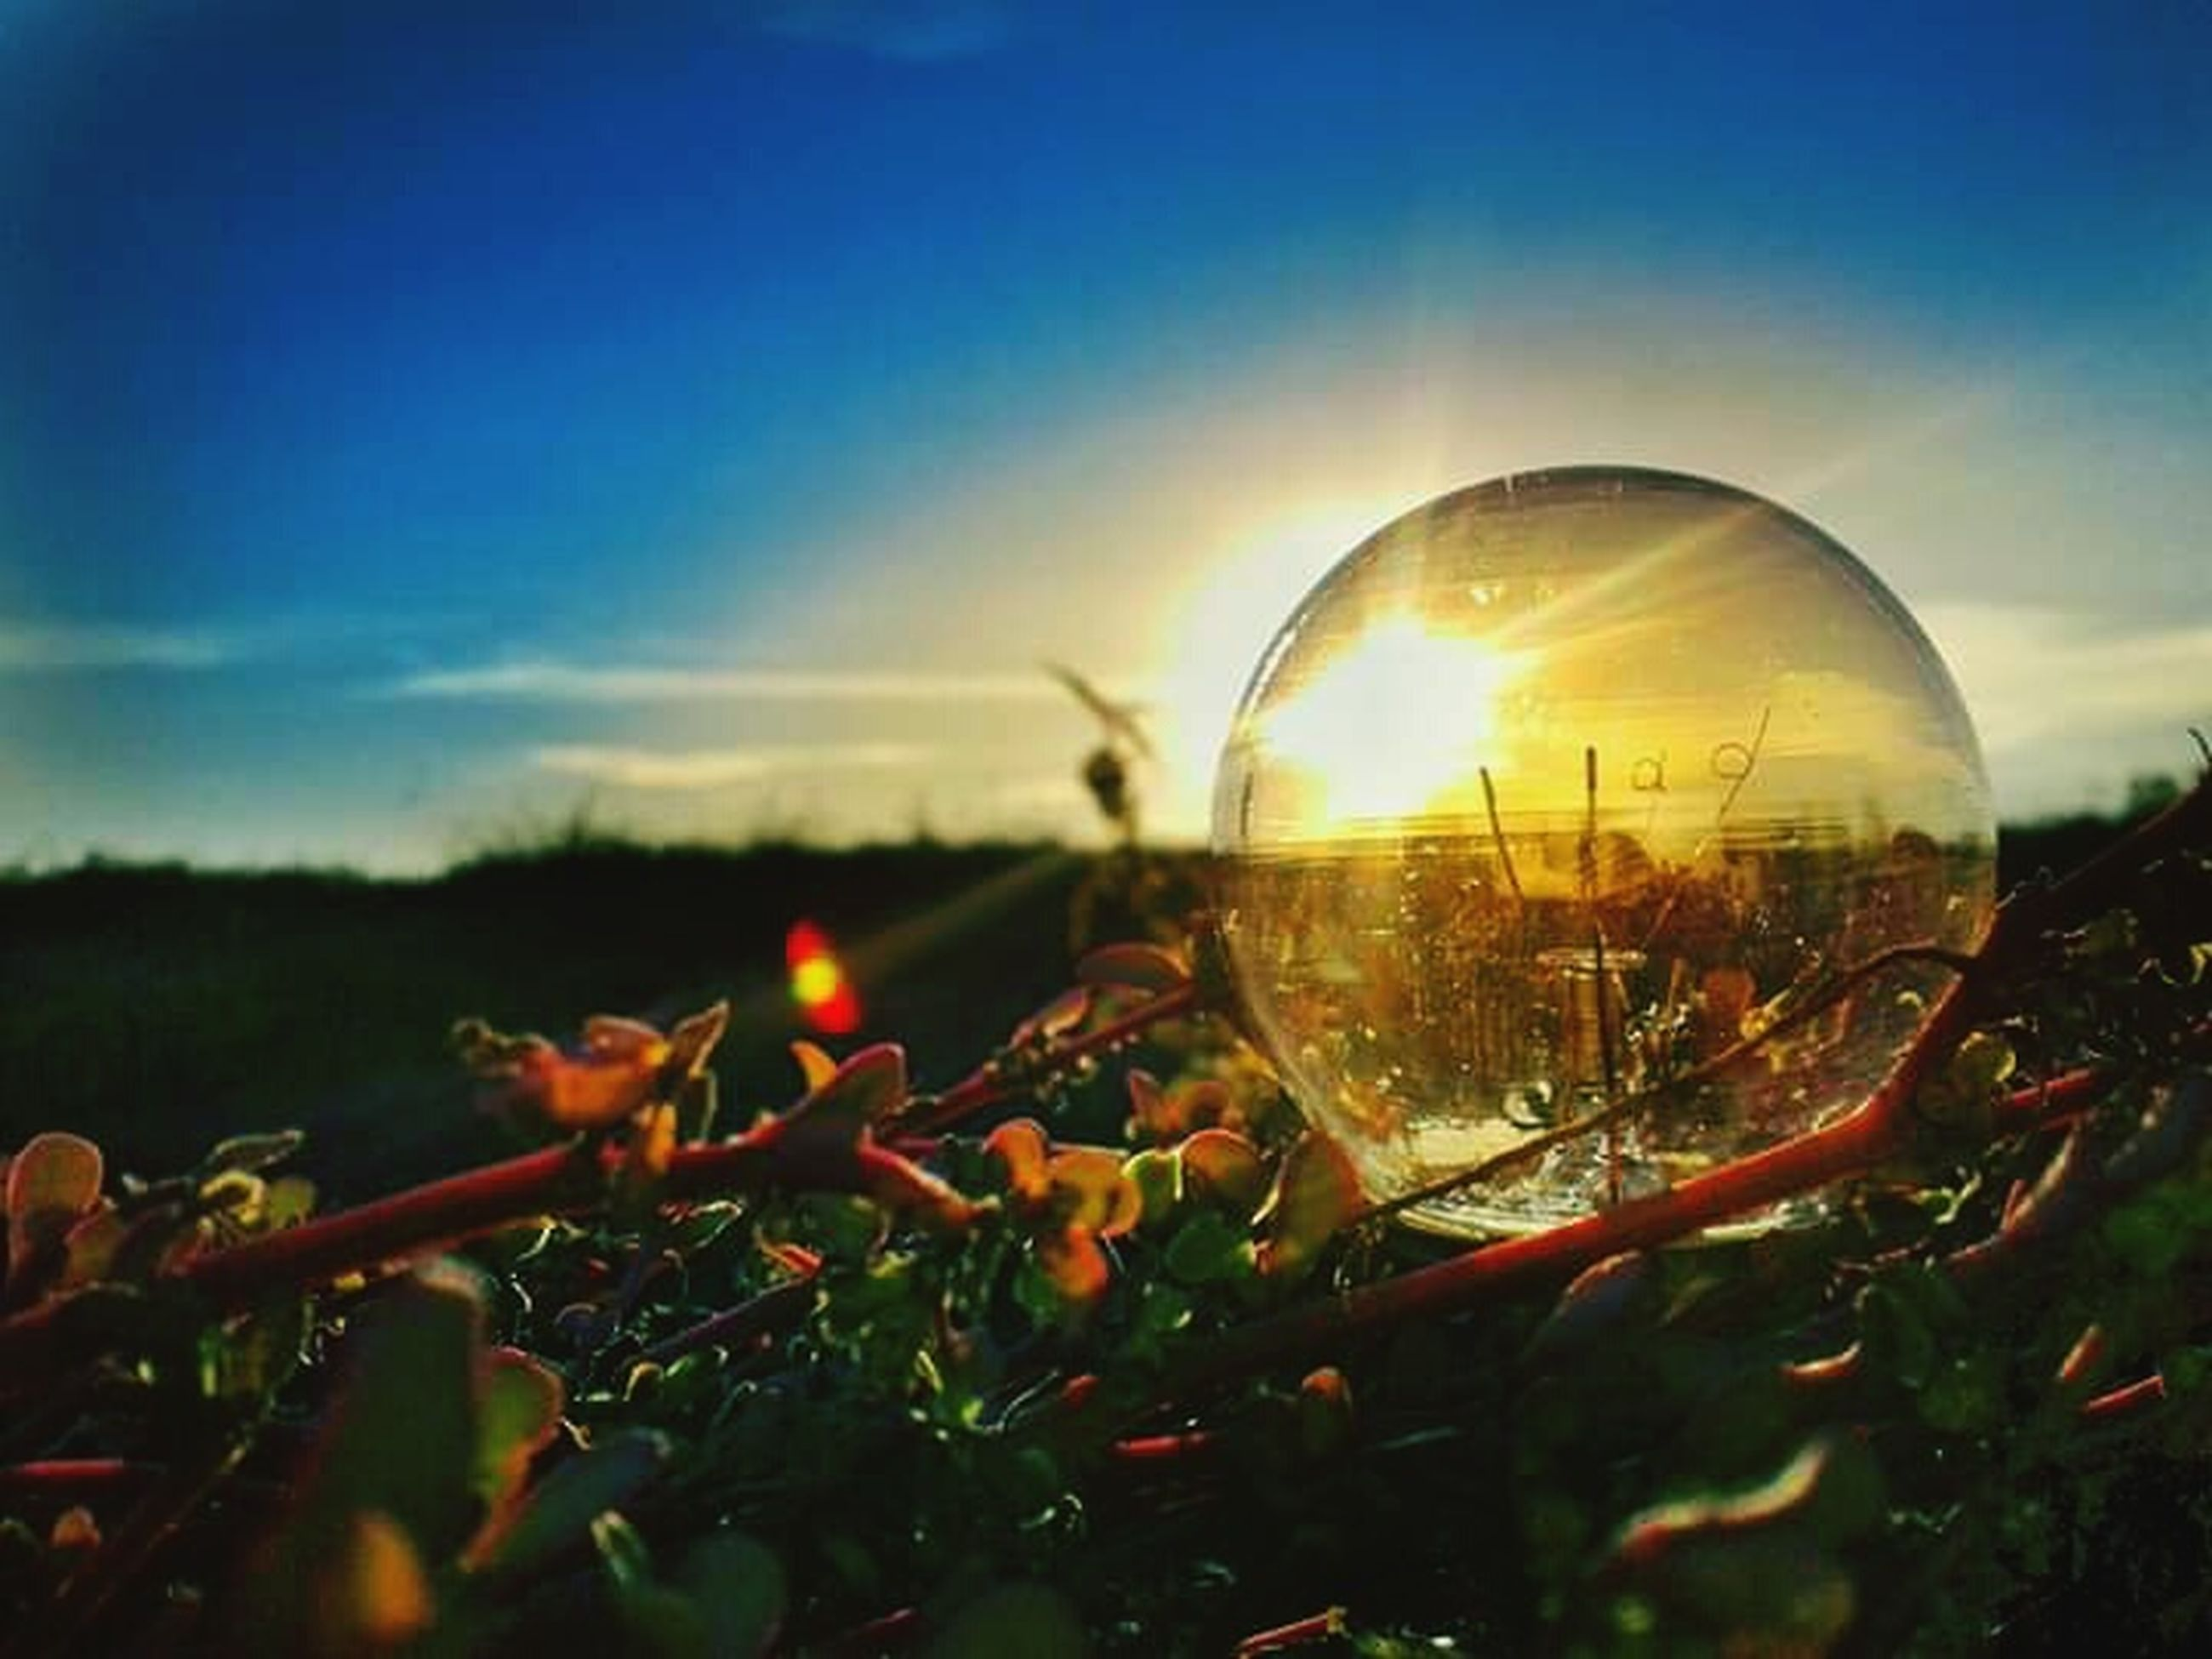 sky, nature, plant, transparent, field, glass - material, close-up, no people, cloud - sky, growth, selective focus, land, outdoors, reflection, sunset, beauty in nature, sunlight, landscape, day, flowering plant, lens flare, digital composite